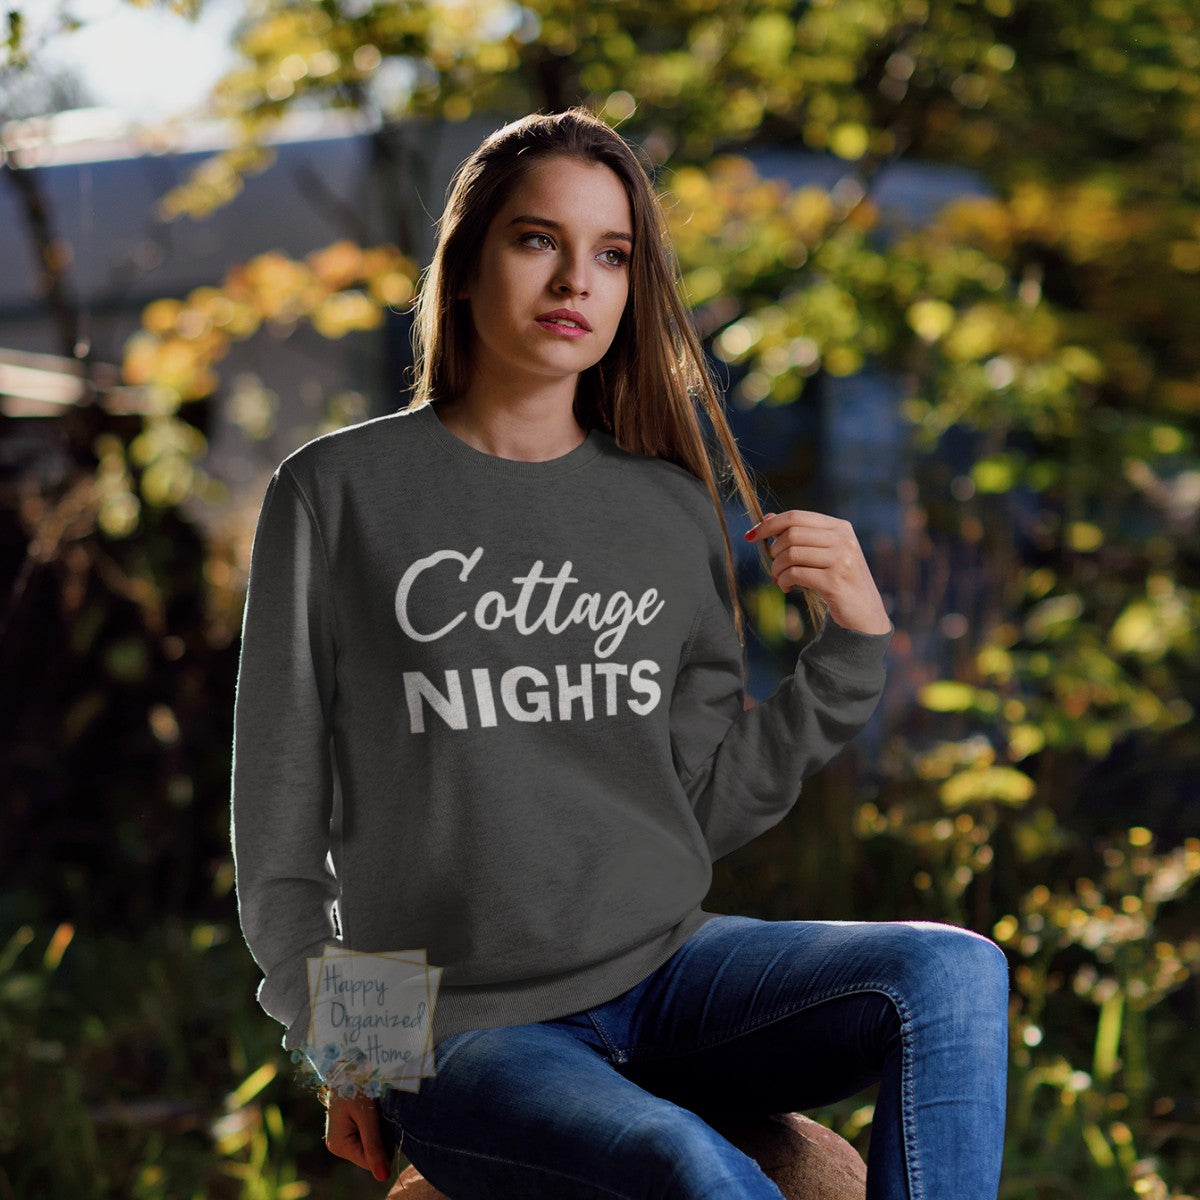 Cottage Nights - comfy unisex sweatshirt